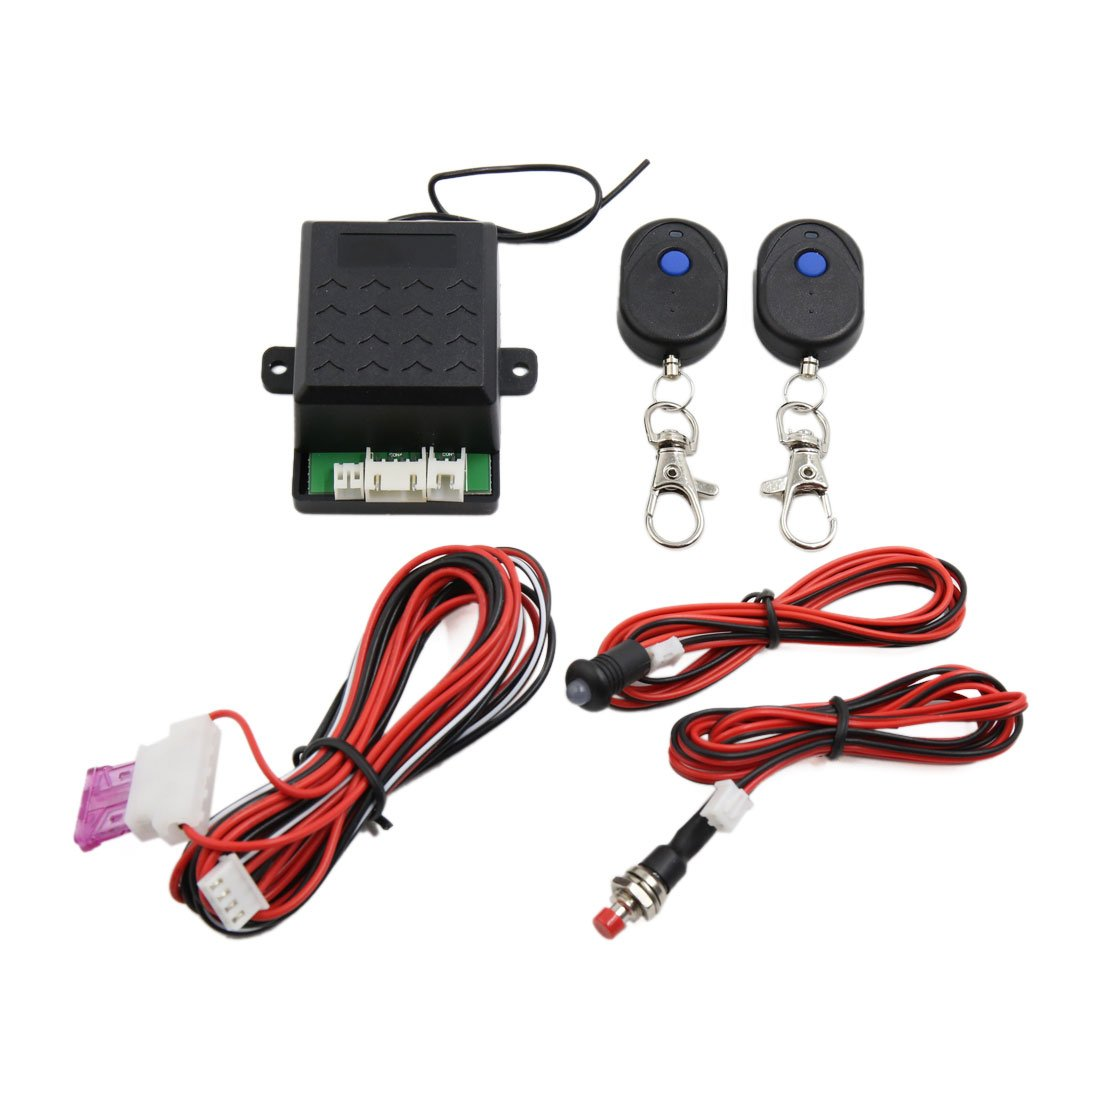 uxcell Universal Car Engine Immobilizer Lock Anti robbery system Anti-stealing Alarm System